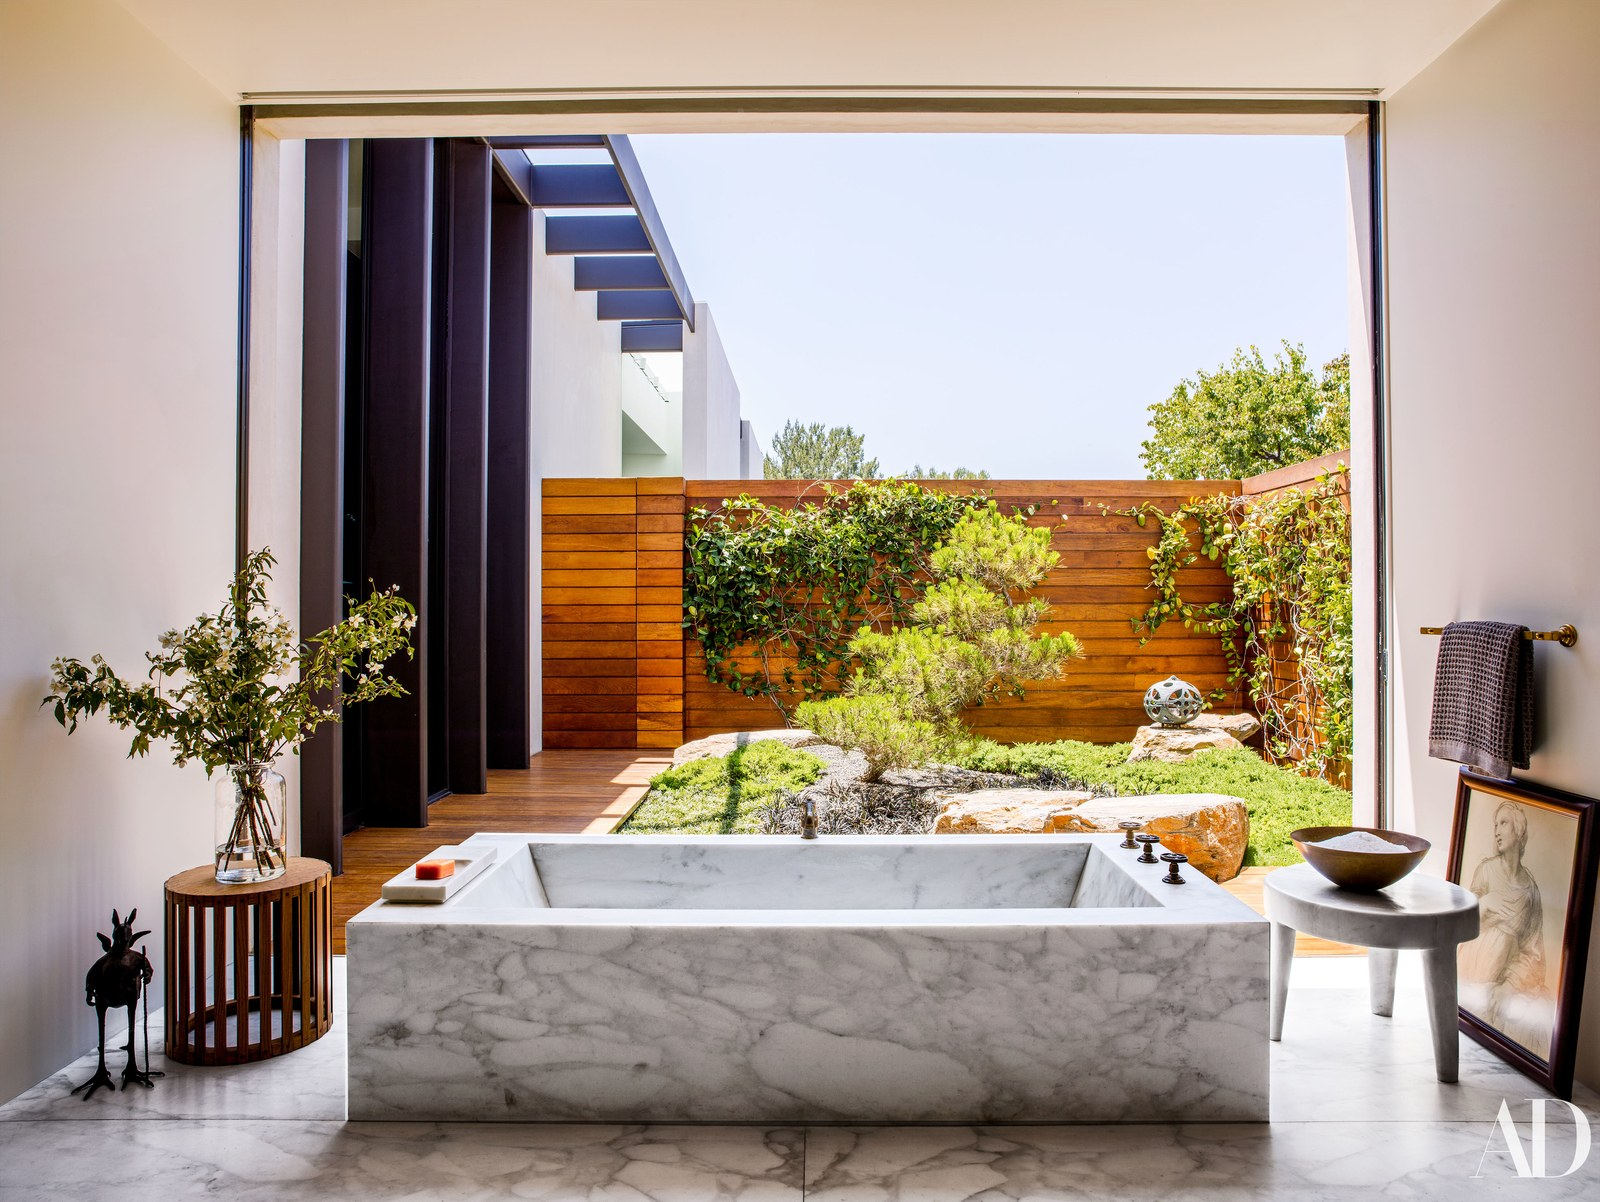 5 Celebrity Bathrooms You Need To See